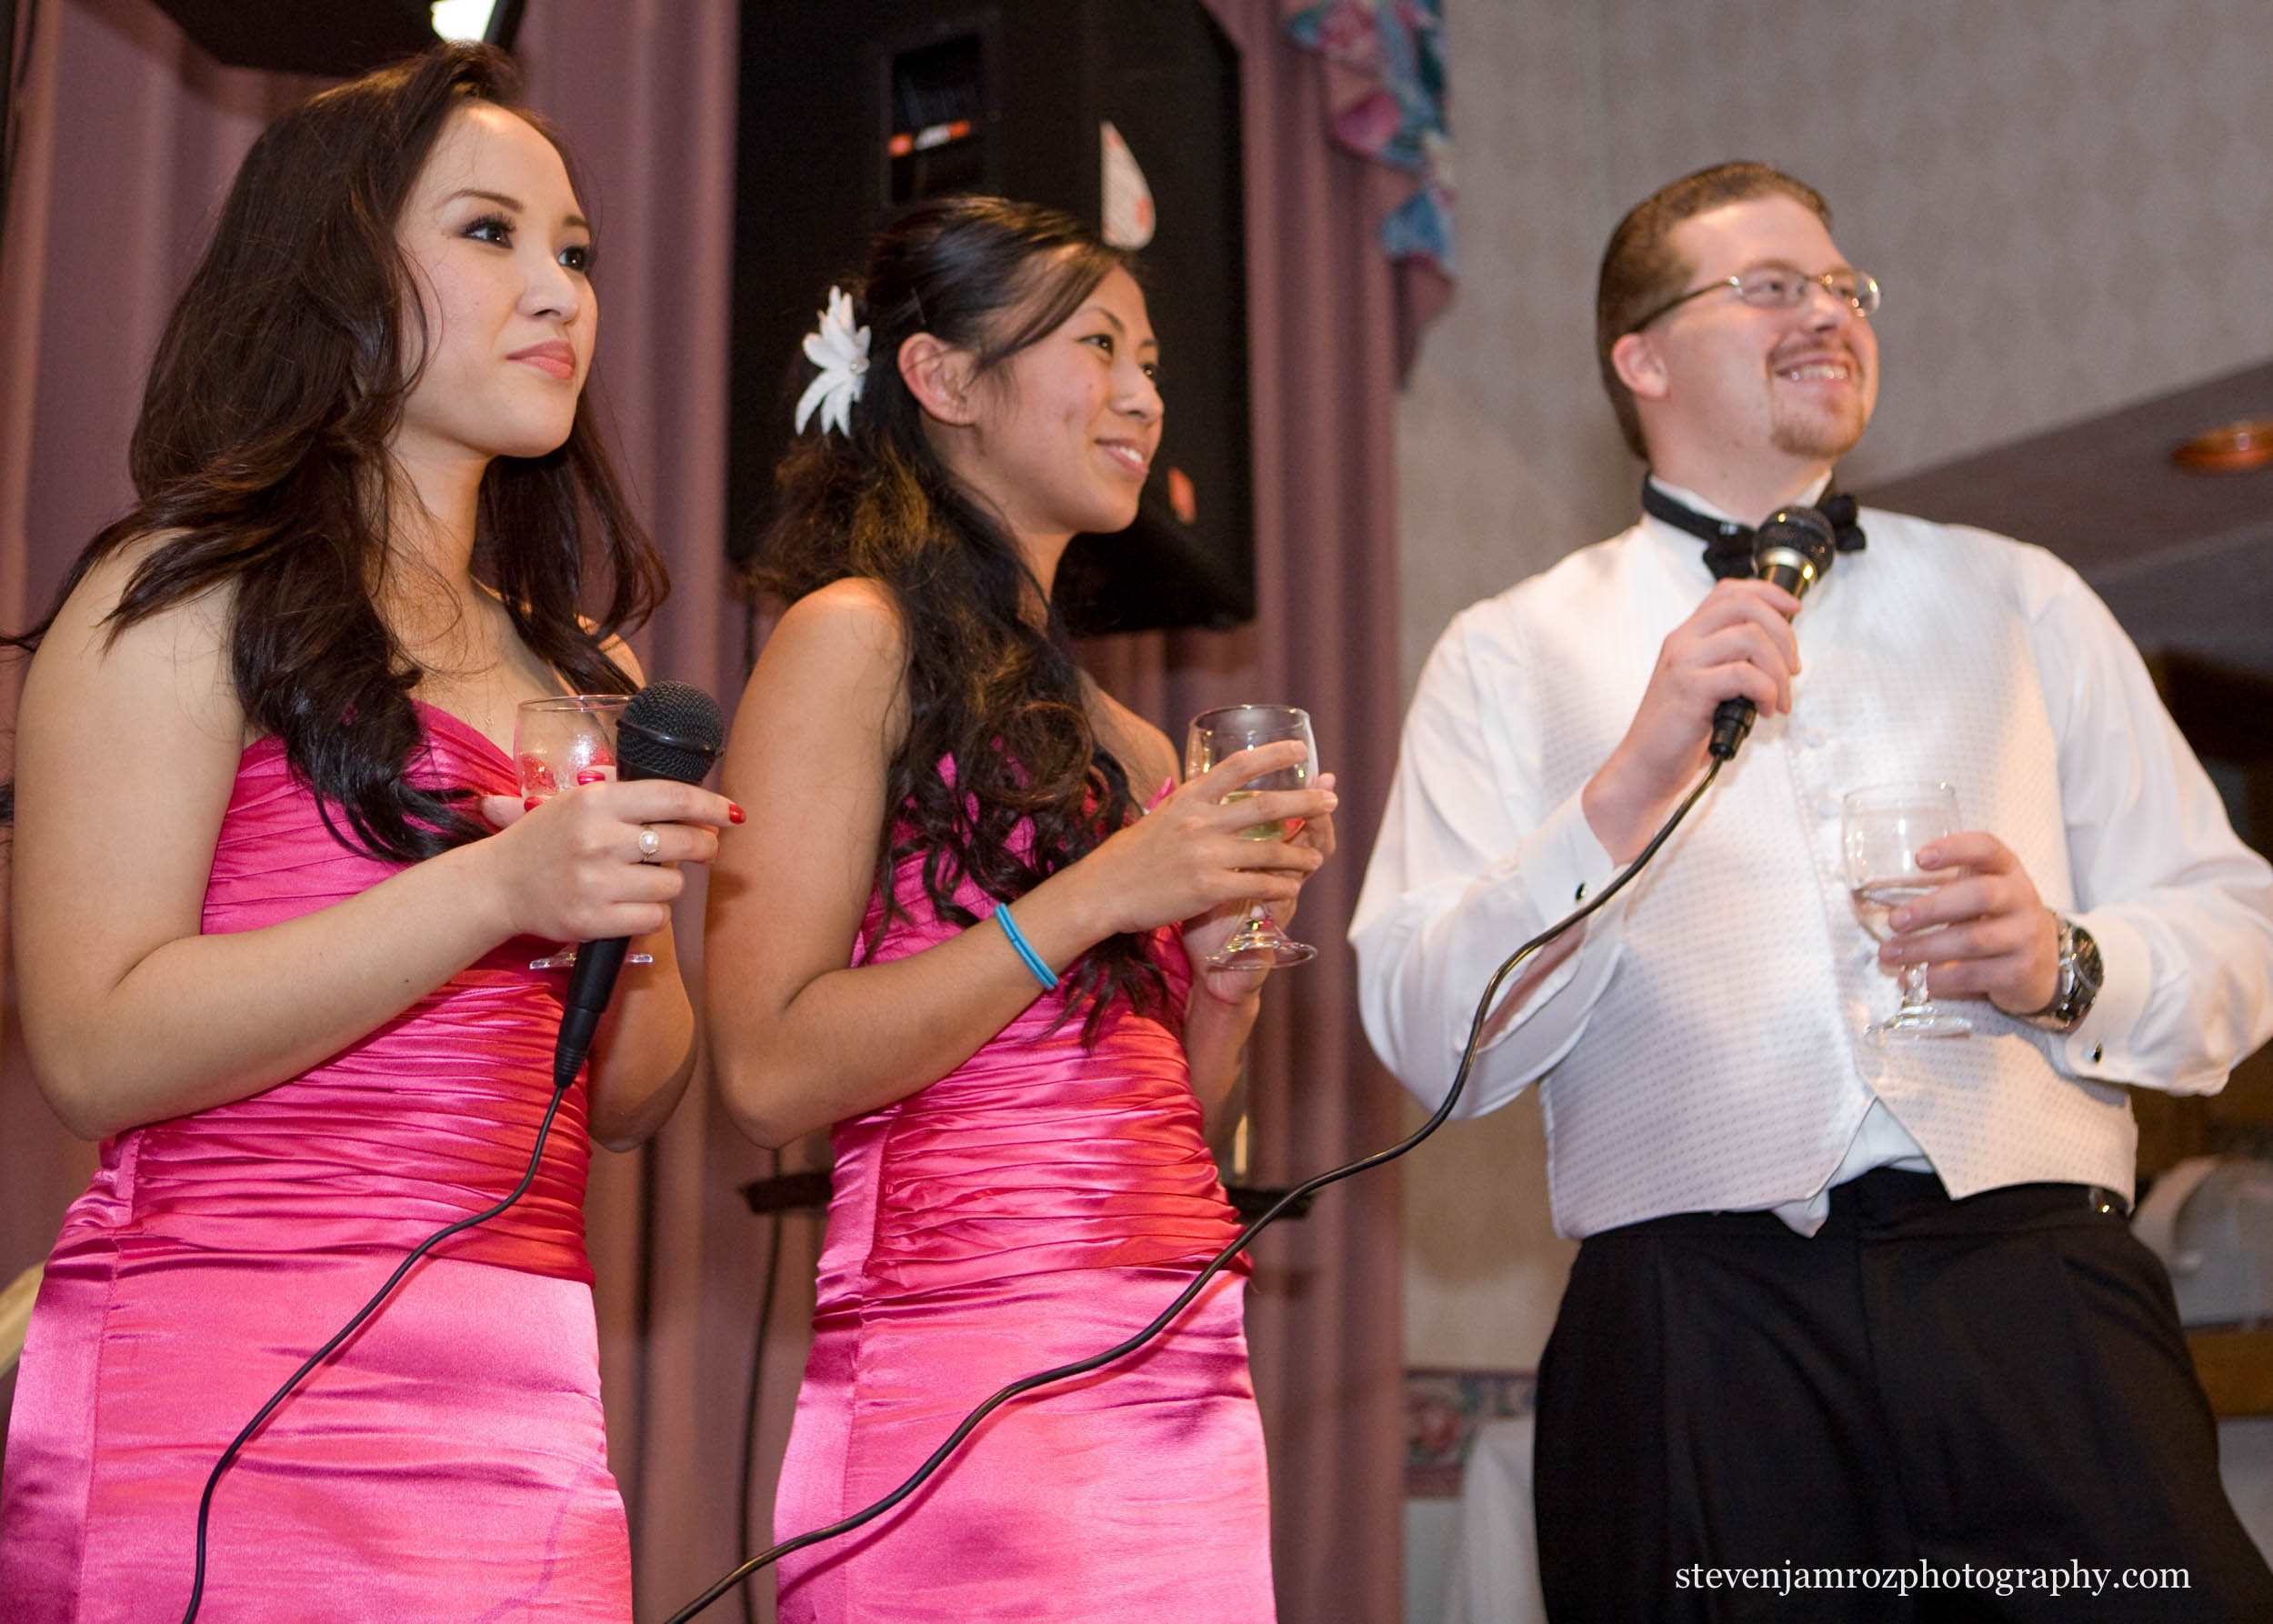 speeches-toasts-wedding-raleigh-steven-jamroz-photography-0272.jpg